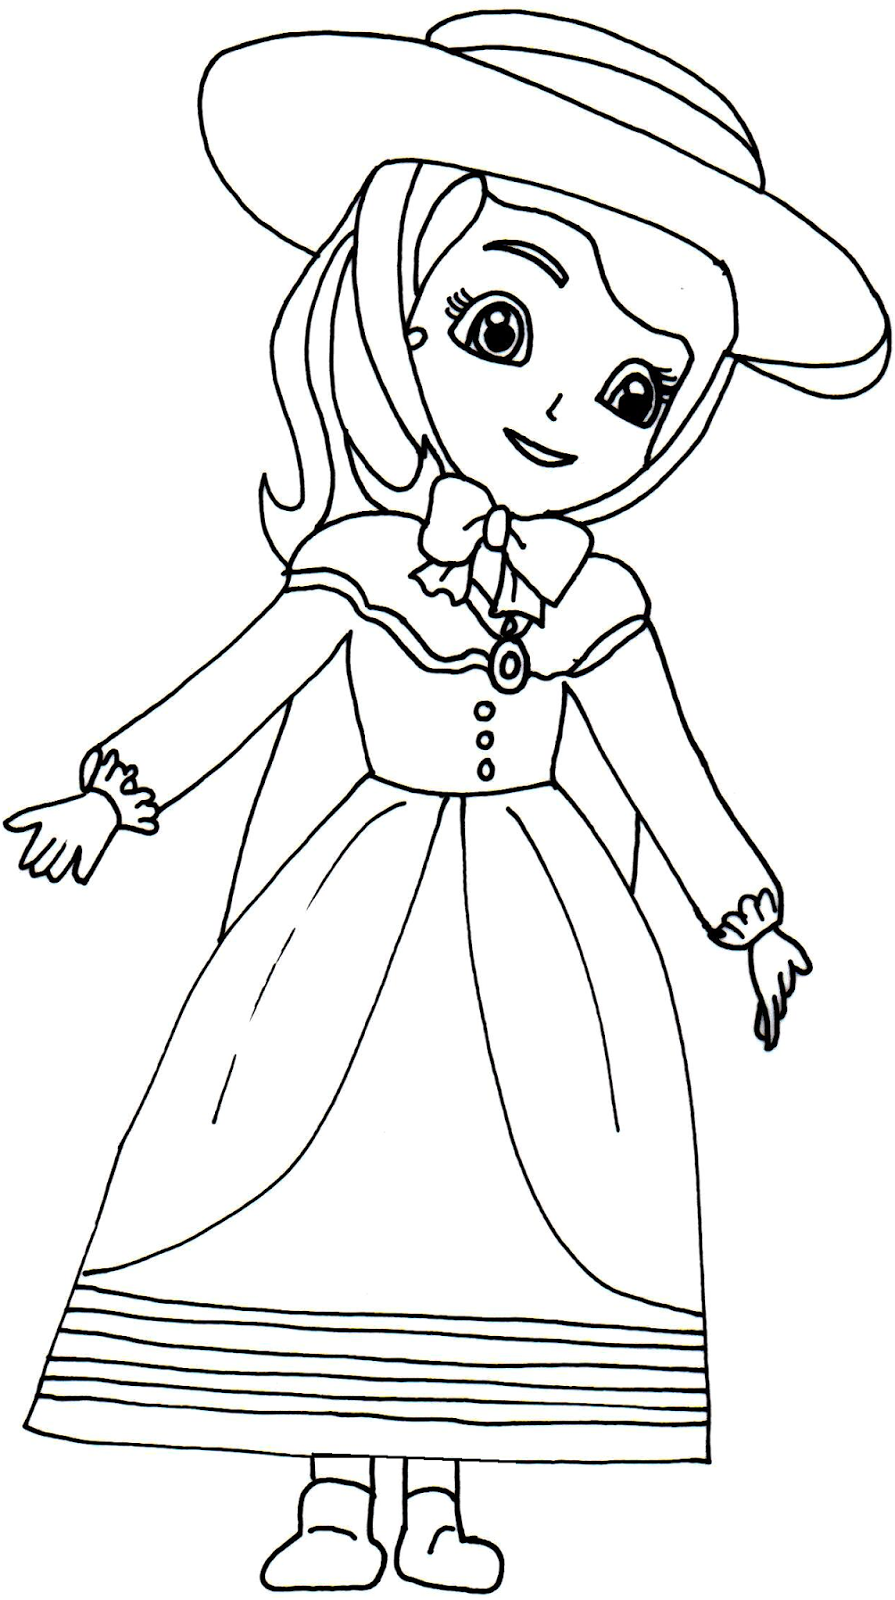 Charmant 6 Sofia The First Printable Coloring Sheets Hispana Global   Sofia The First  Coloring Pages To